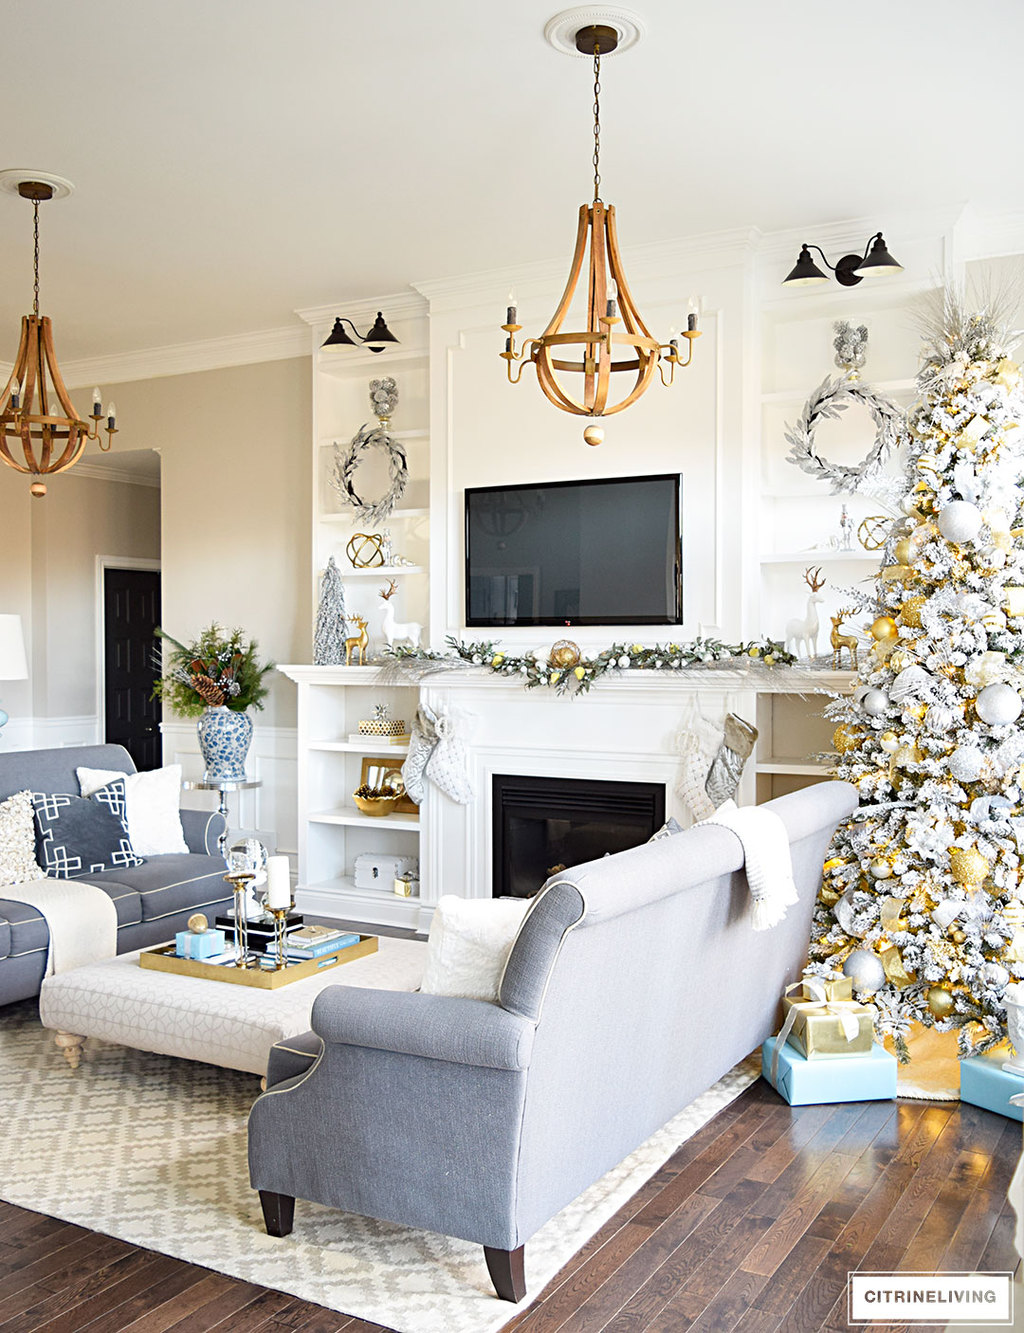 Christmas Home Tour - Gorgeous living room with beautiful metallics and icy blue create a chic Holiday theme